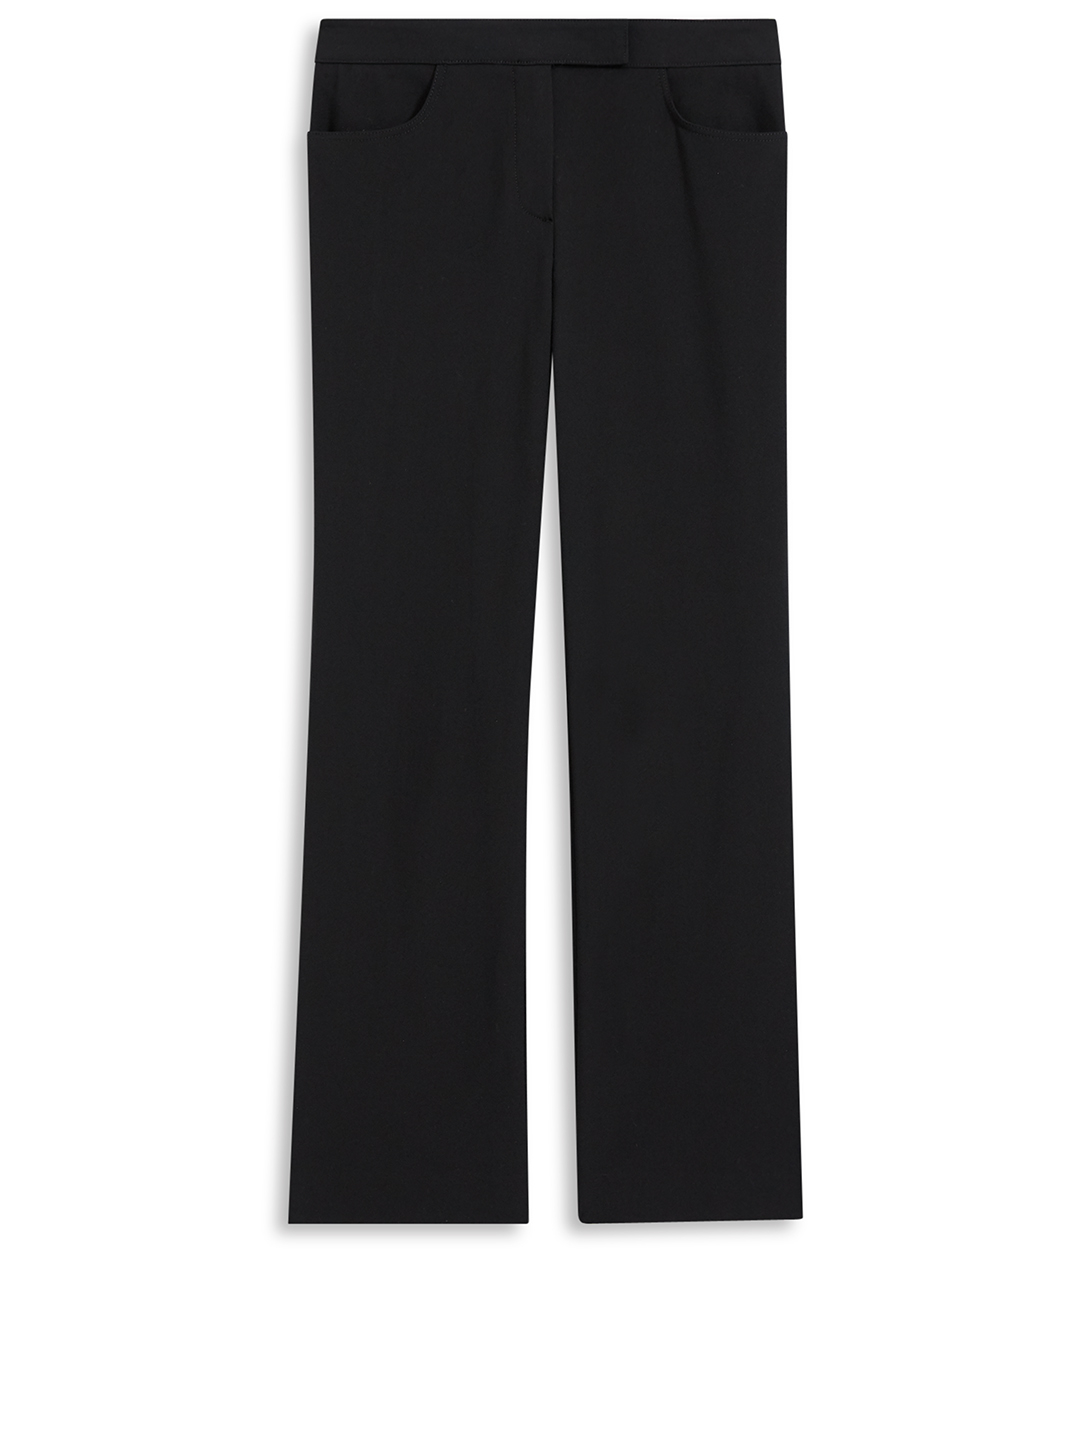 THEORY Cotton Stretch Cropped Pants Women's Black